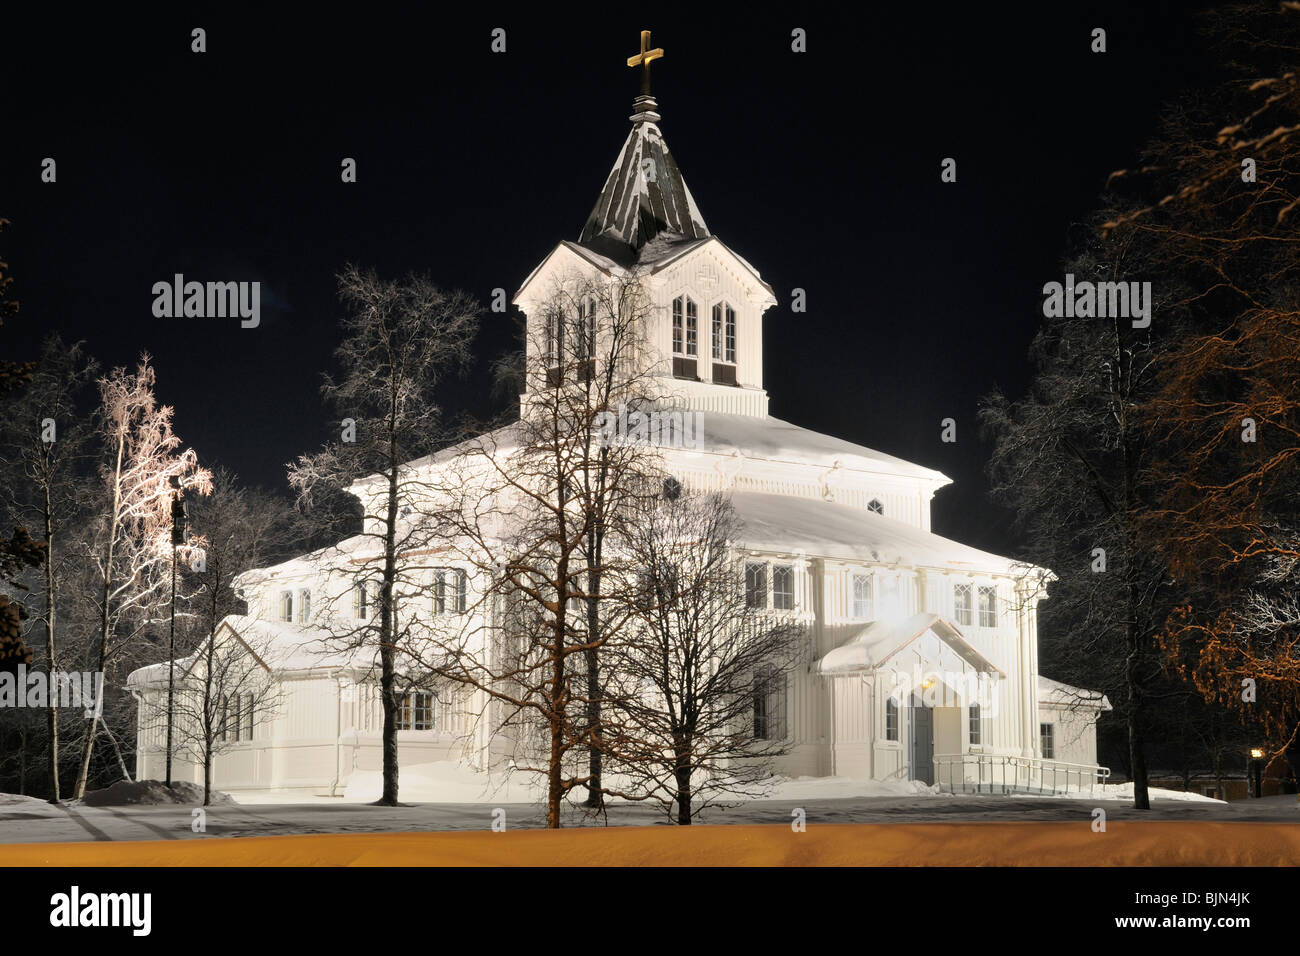 The old Church in Gallivare at night - Stock Image